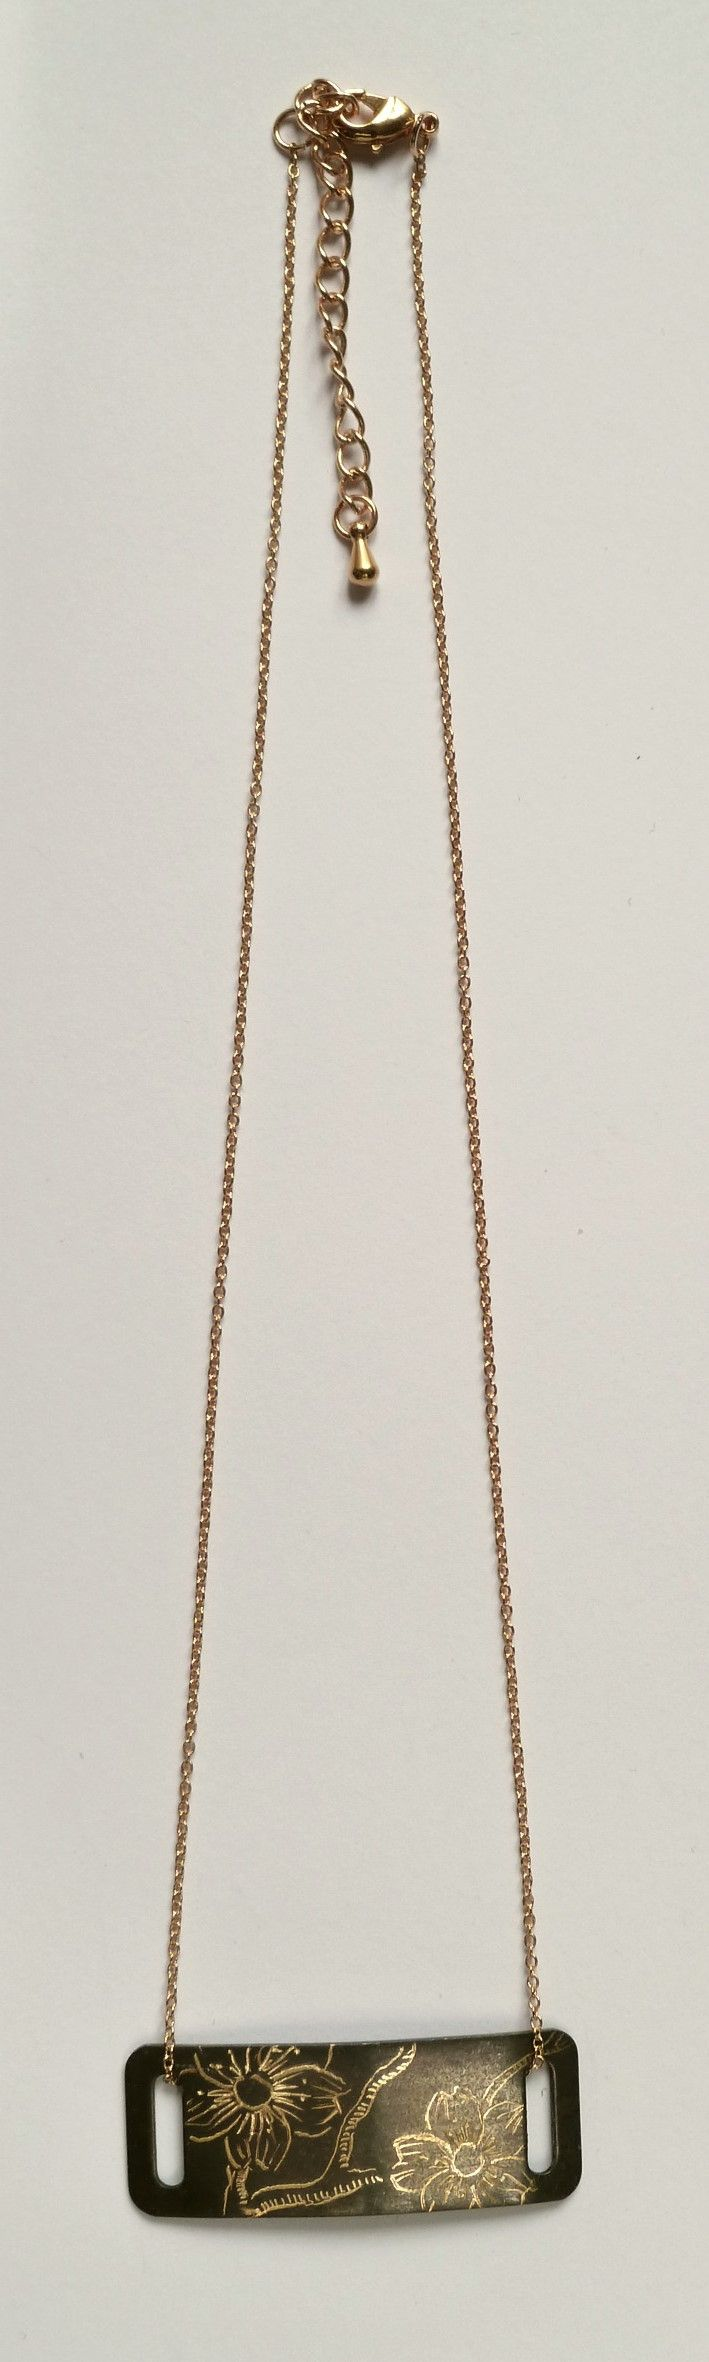 Collier rectangle.